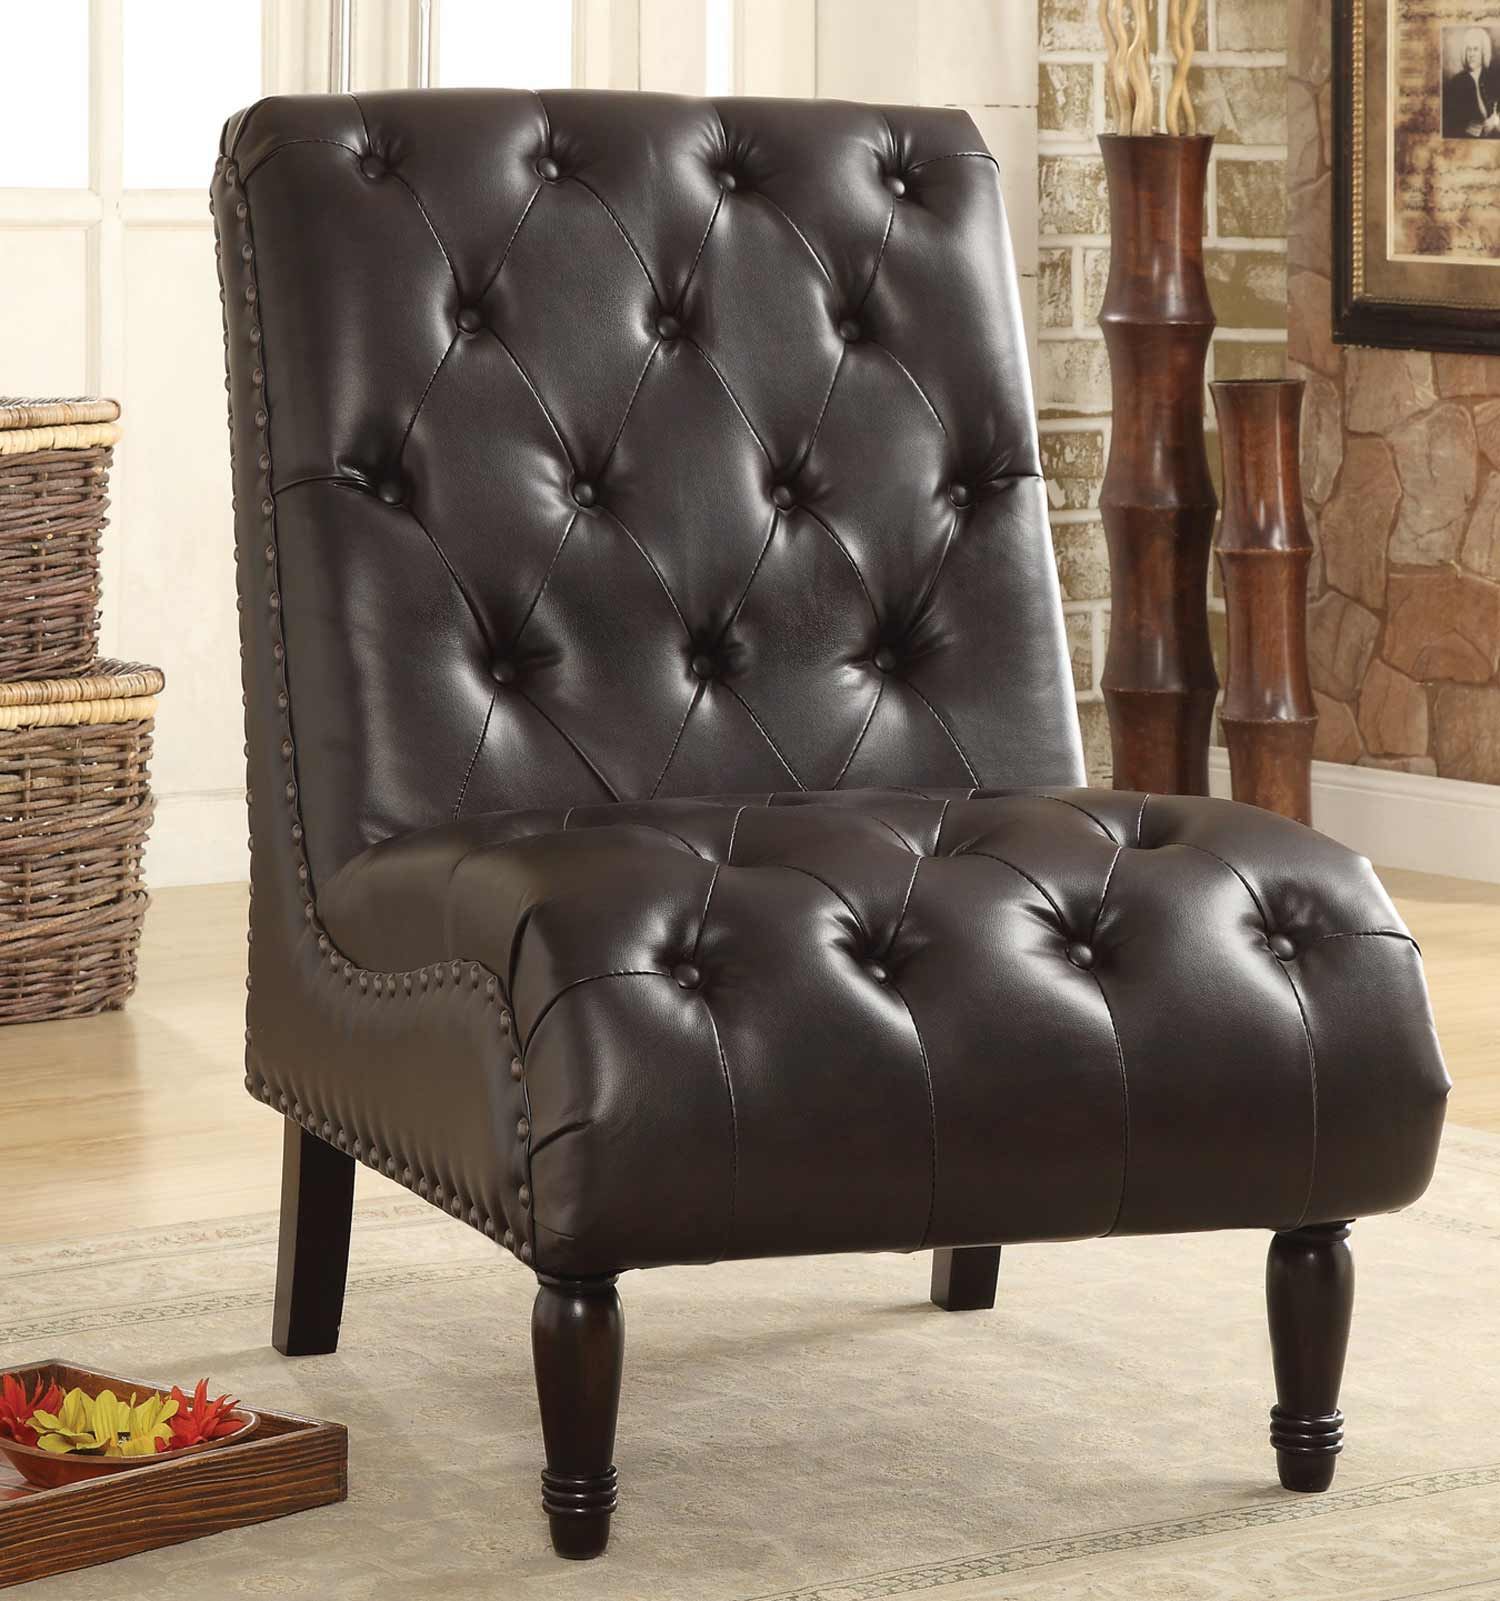 Coaster 902201 Accent Chair - Brown